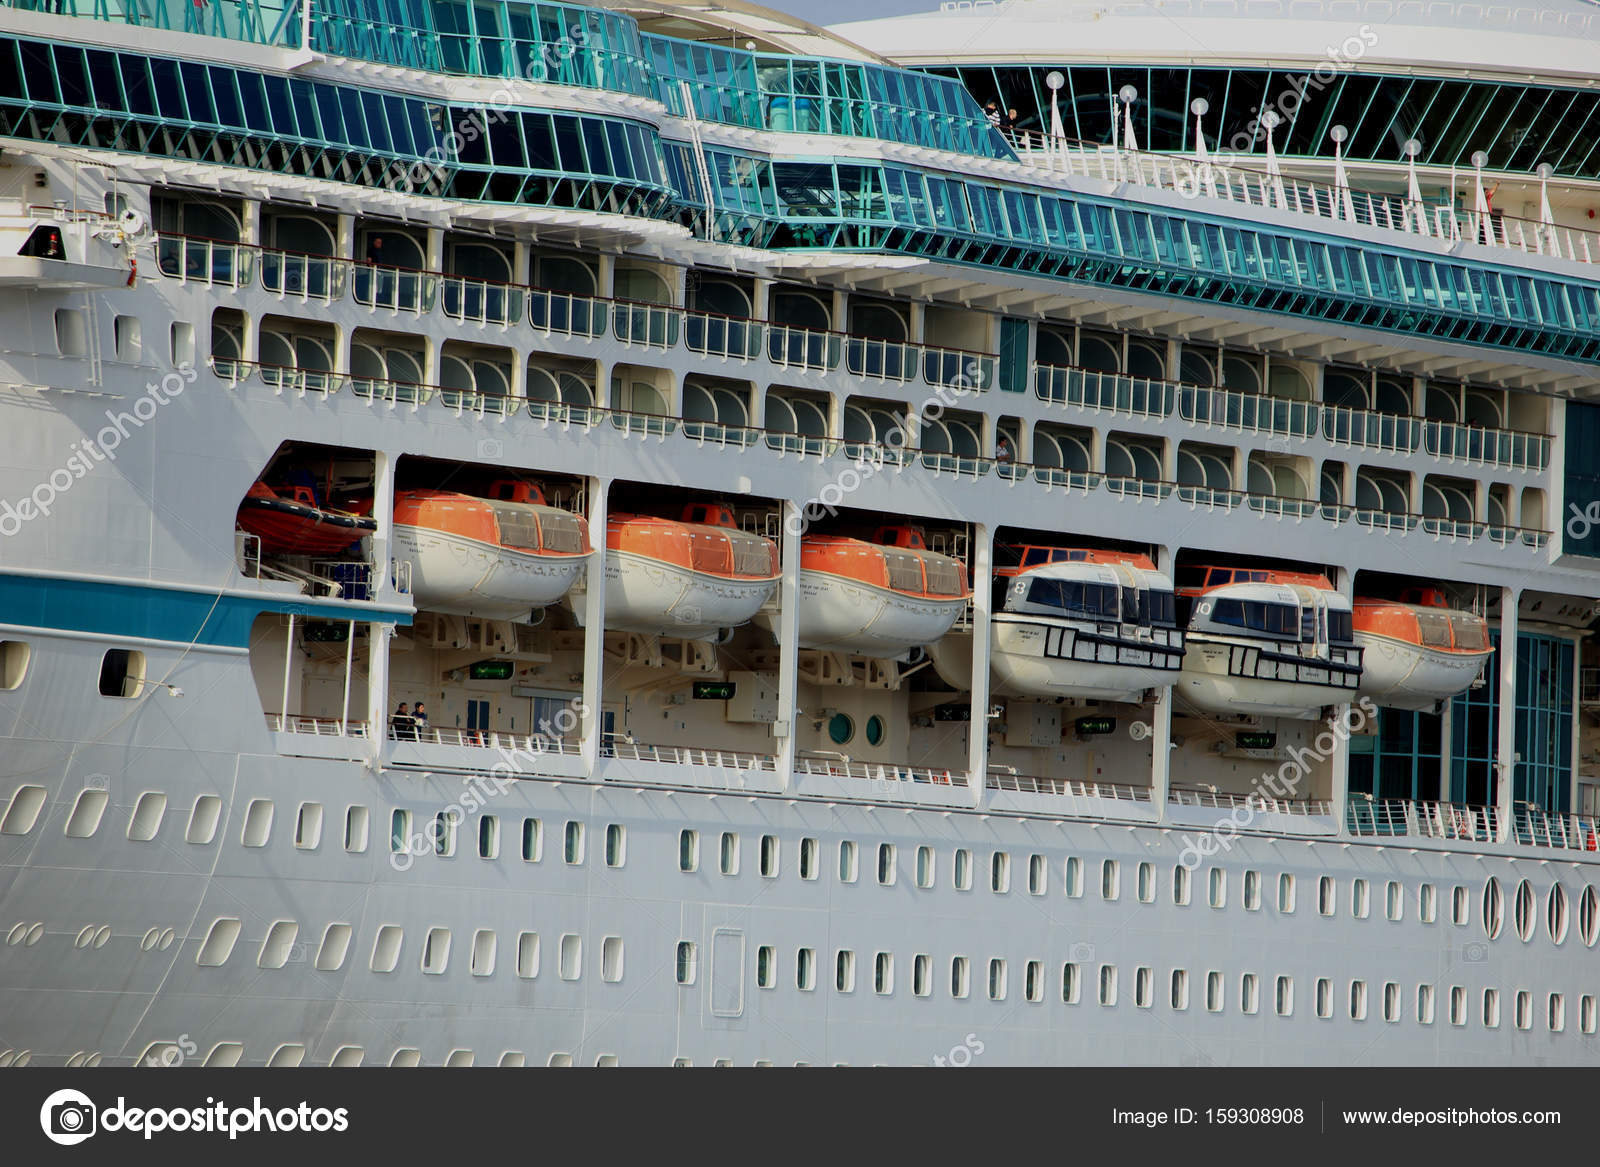 Velsen, The Netherlands - June 3rd 2017: Vision of the Seas